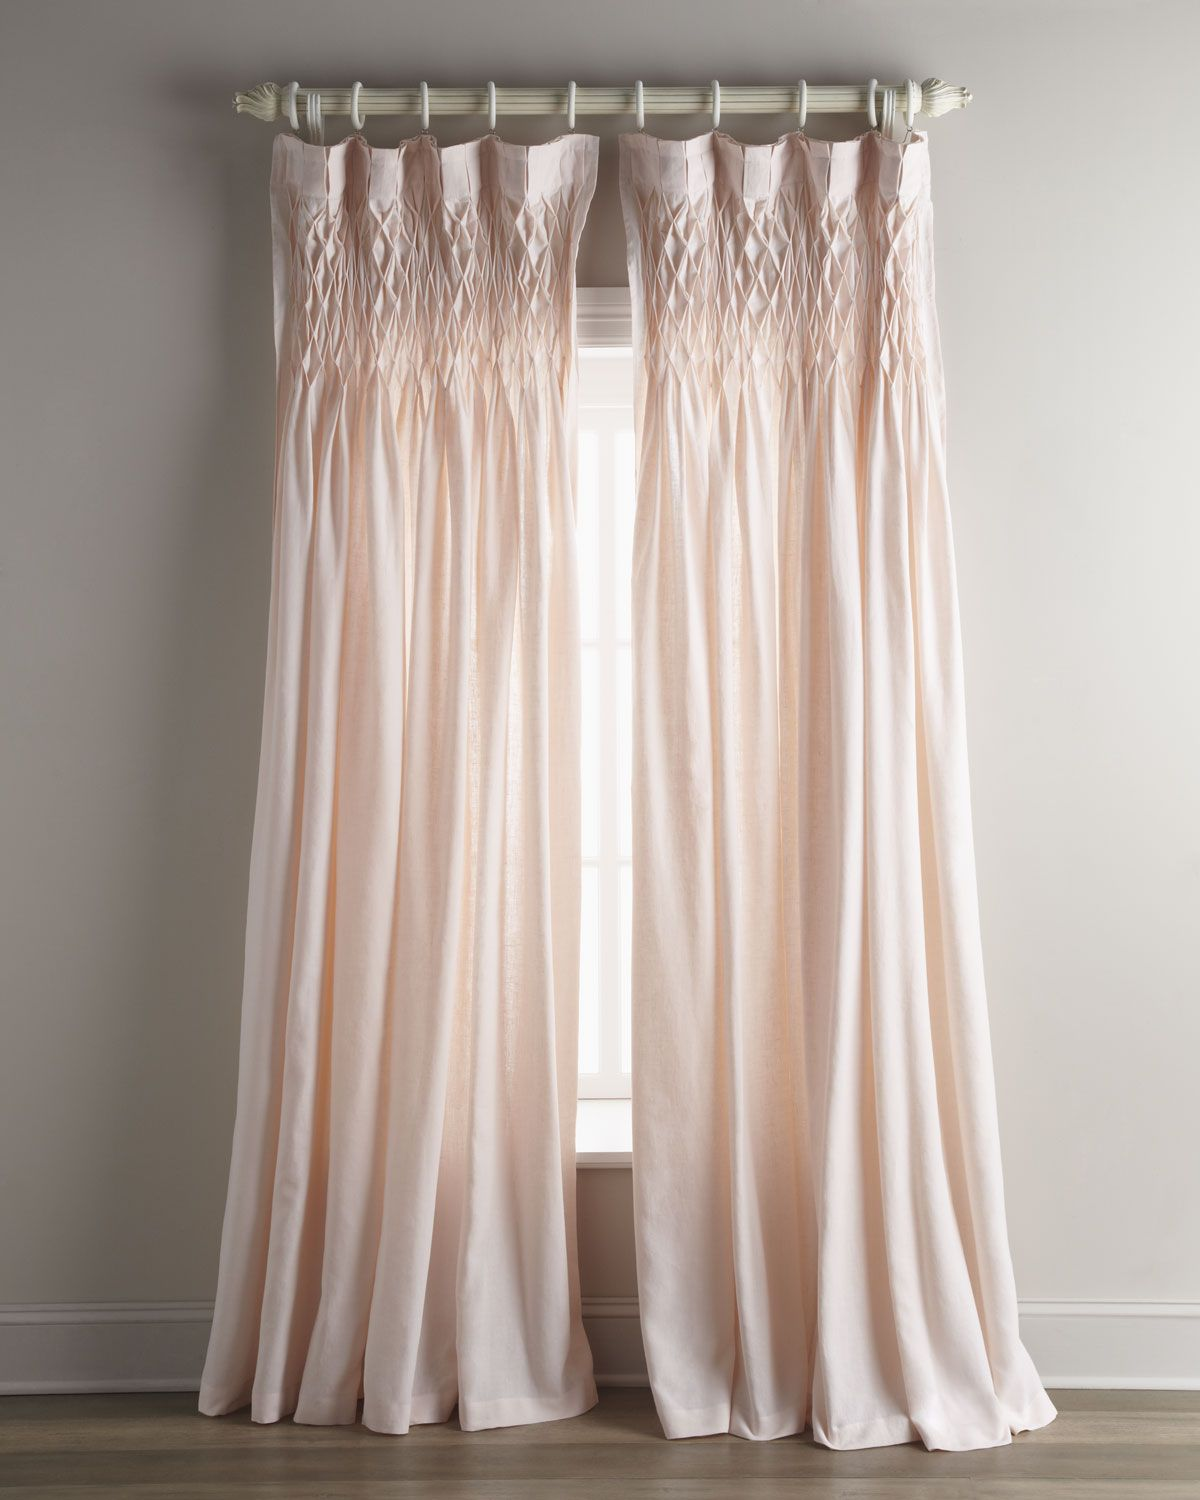 Light pink ruffled curtains - Pom Pom At Home Each 42 W X 96 L Smocked Linen Curtain